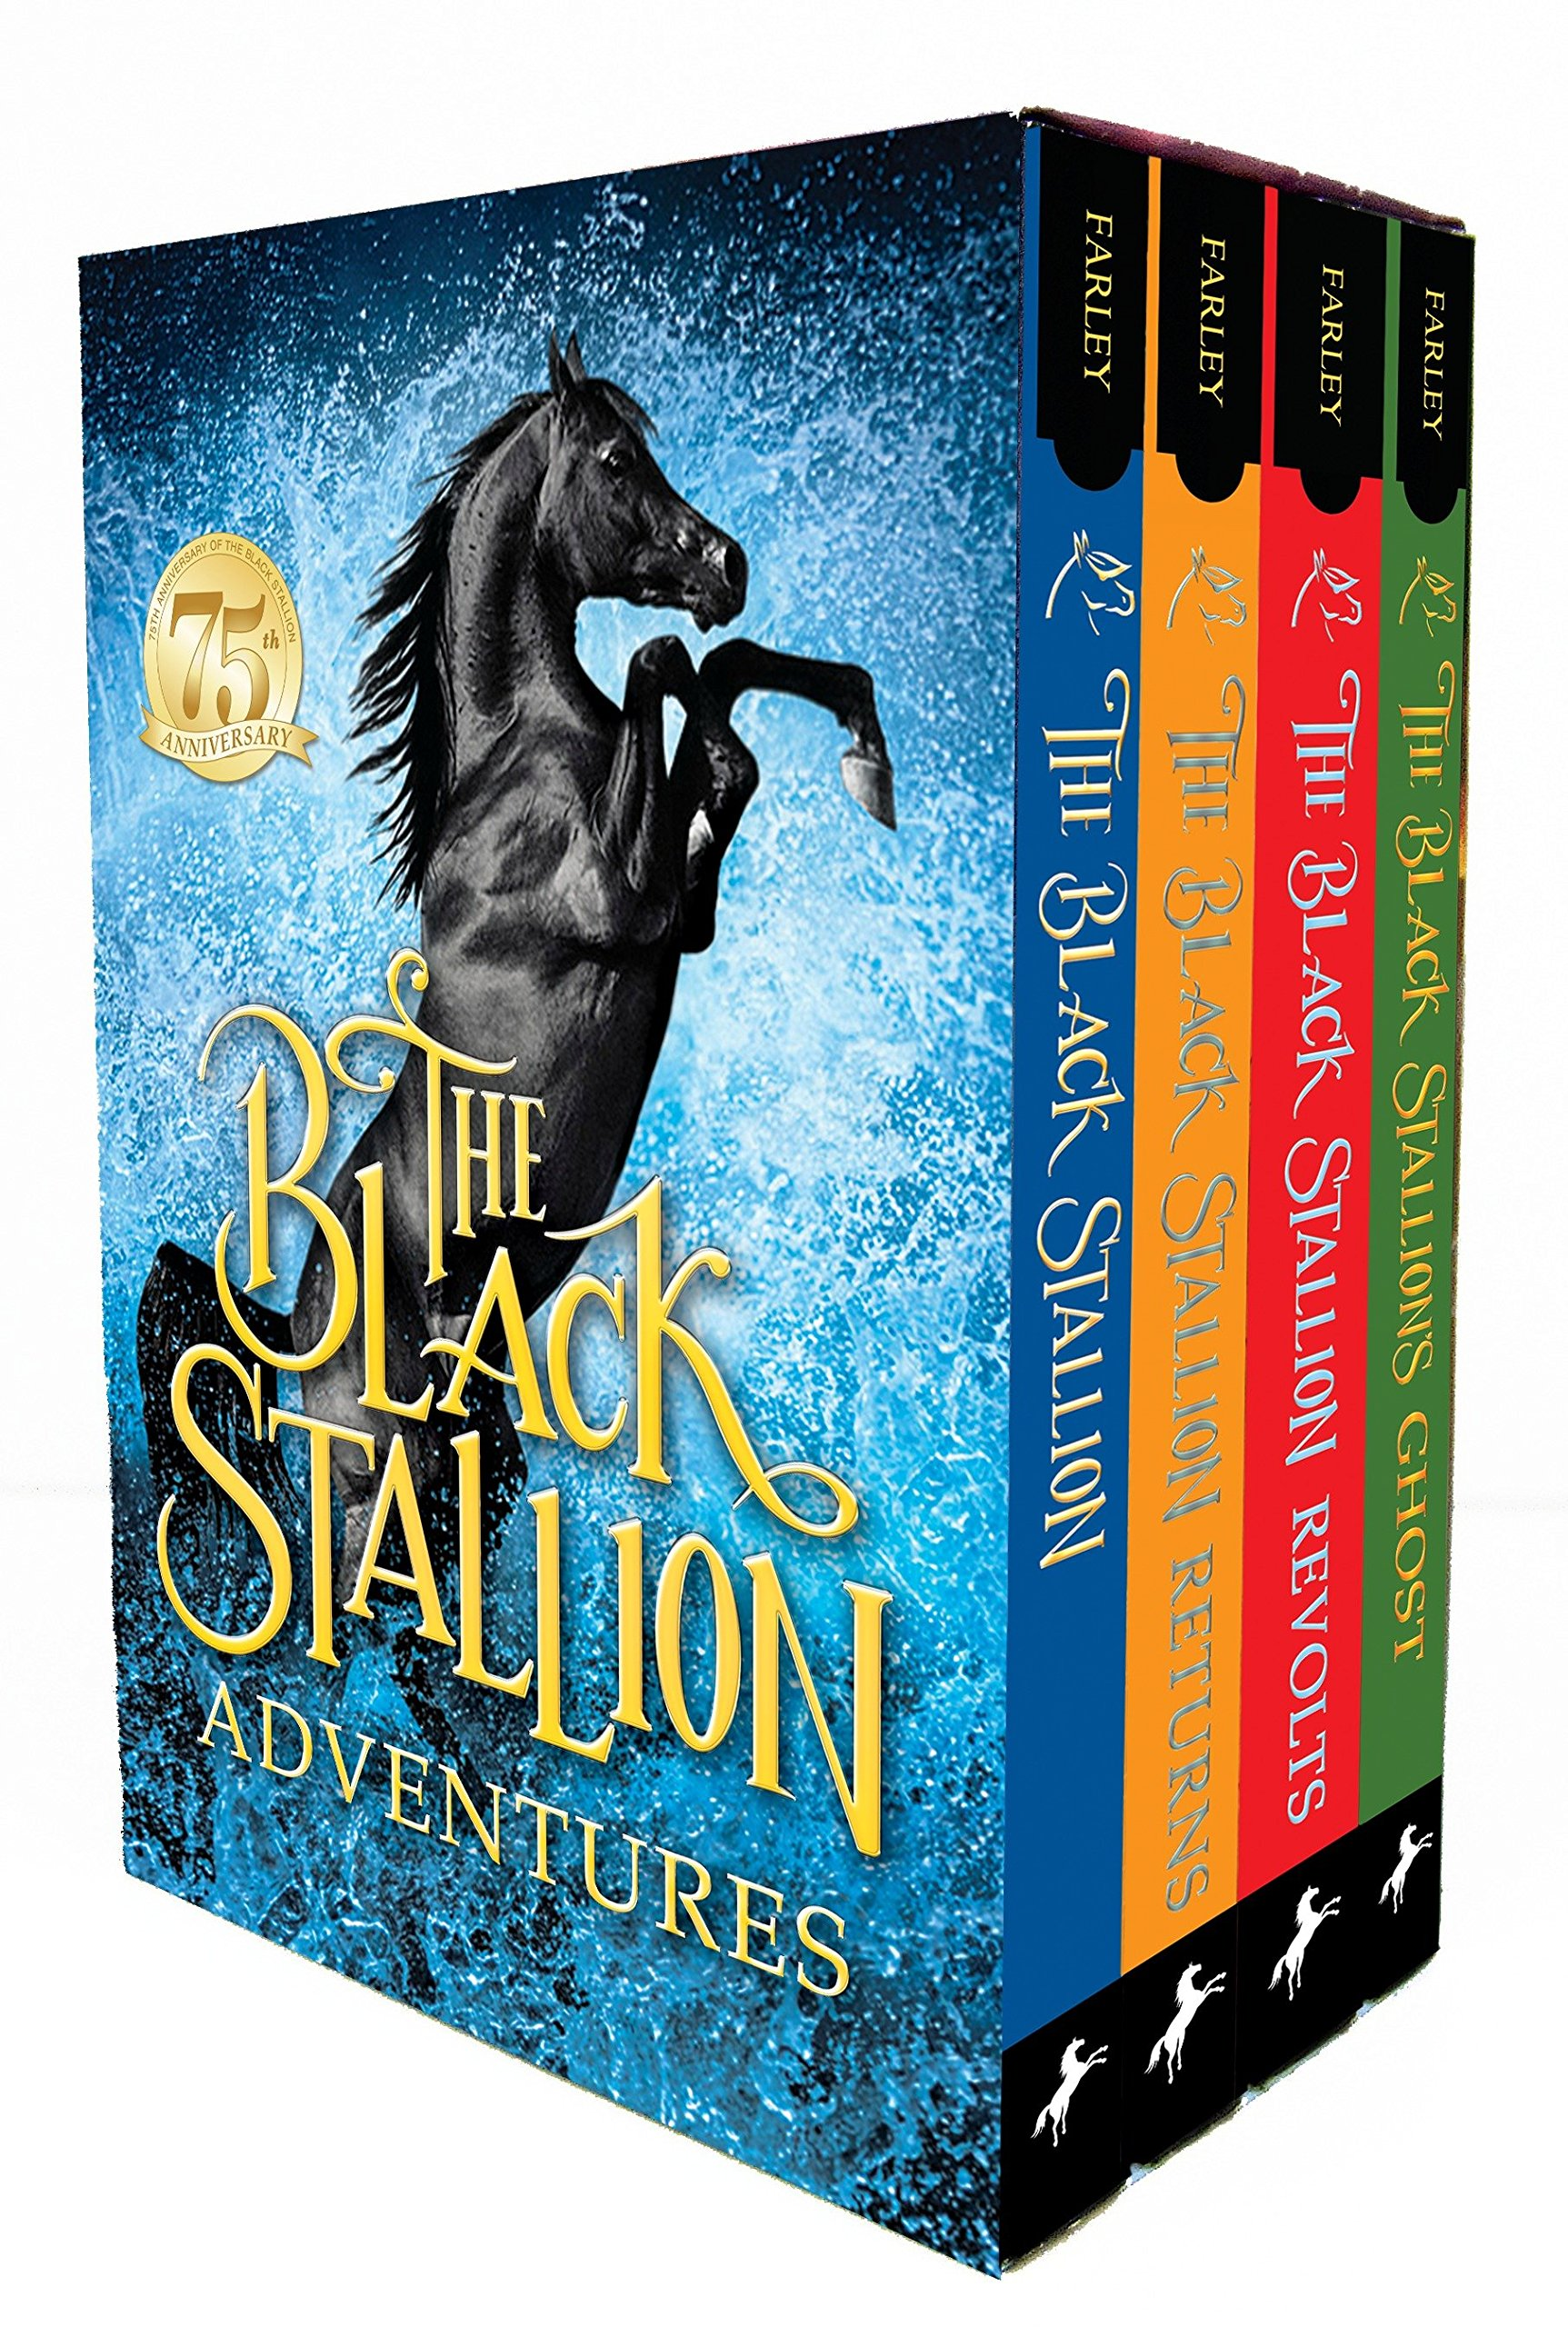 The Black Stallion Adventures! (Box Set)